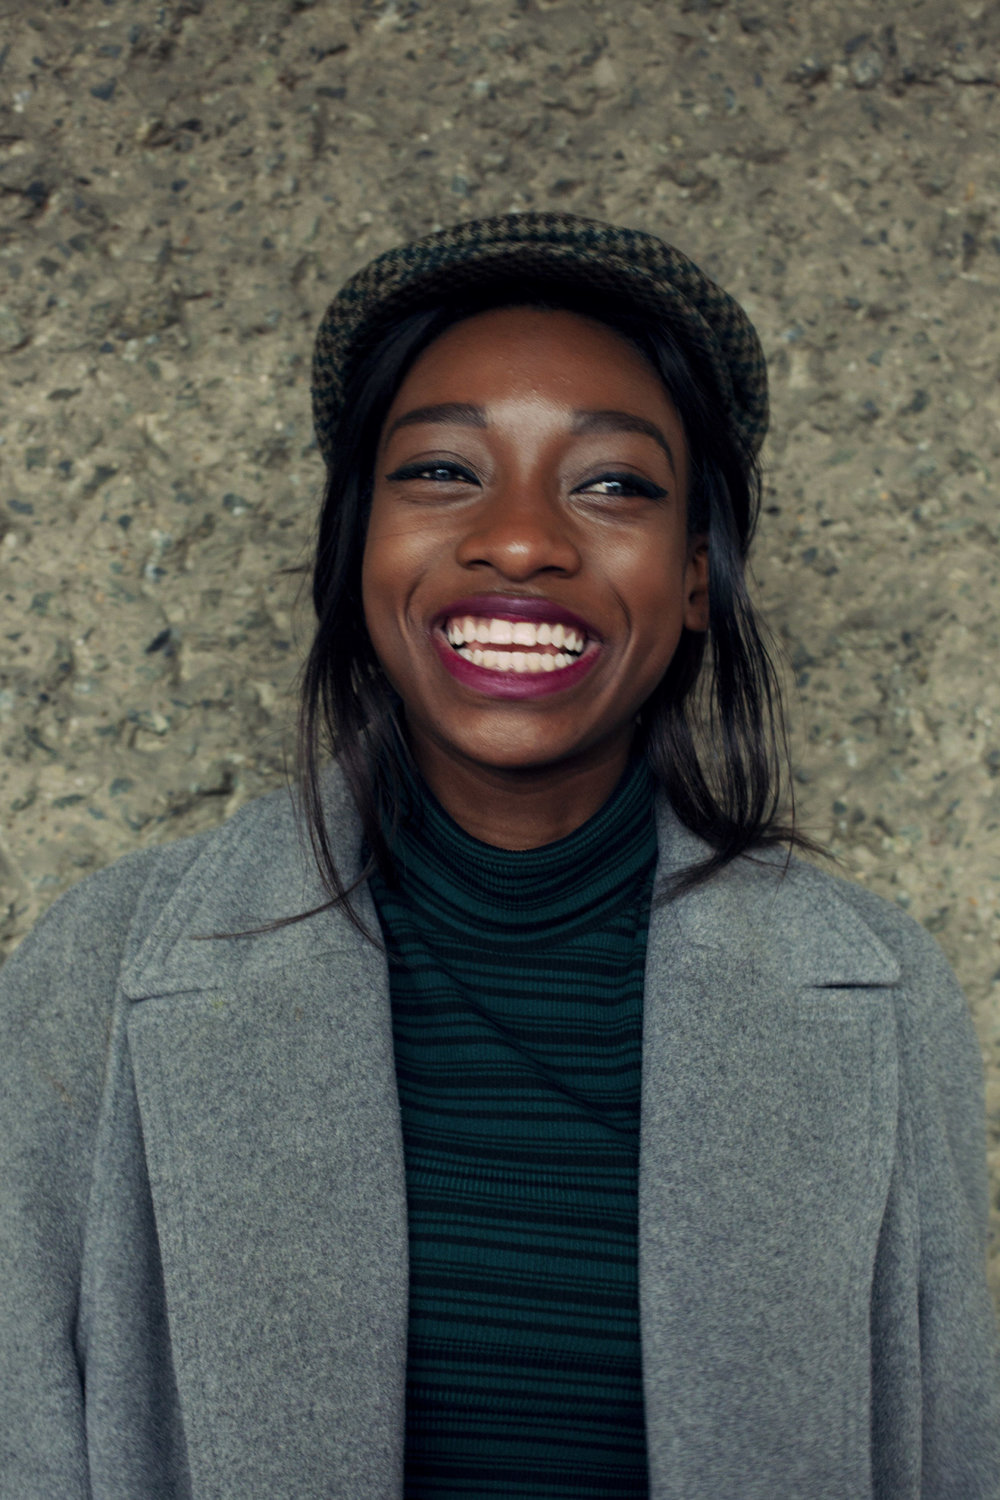 Little Simz for Rookie